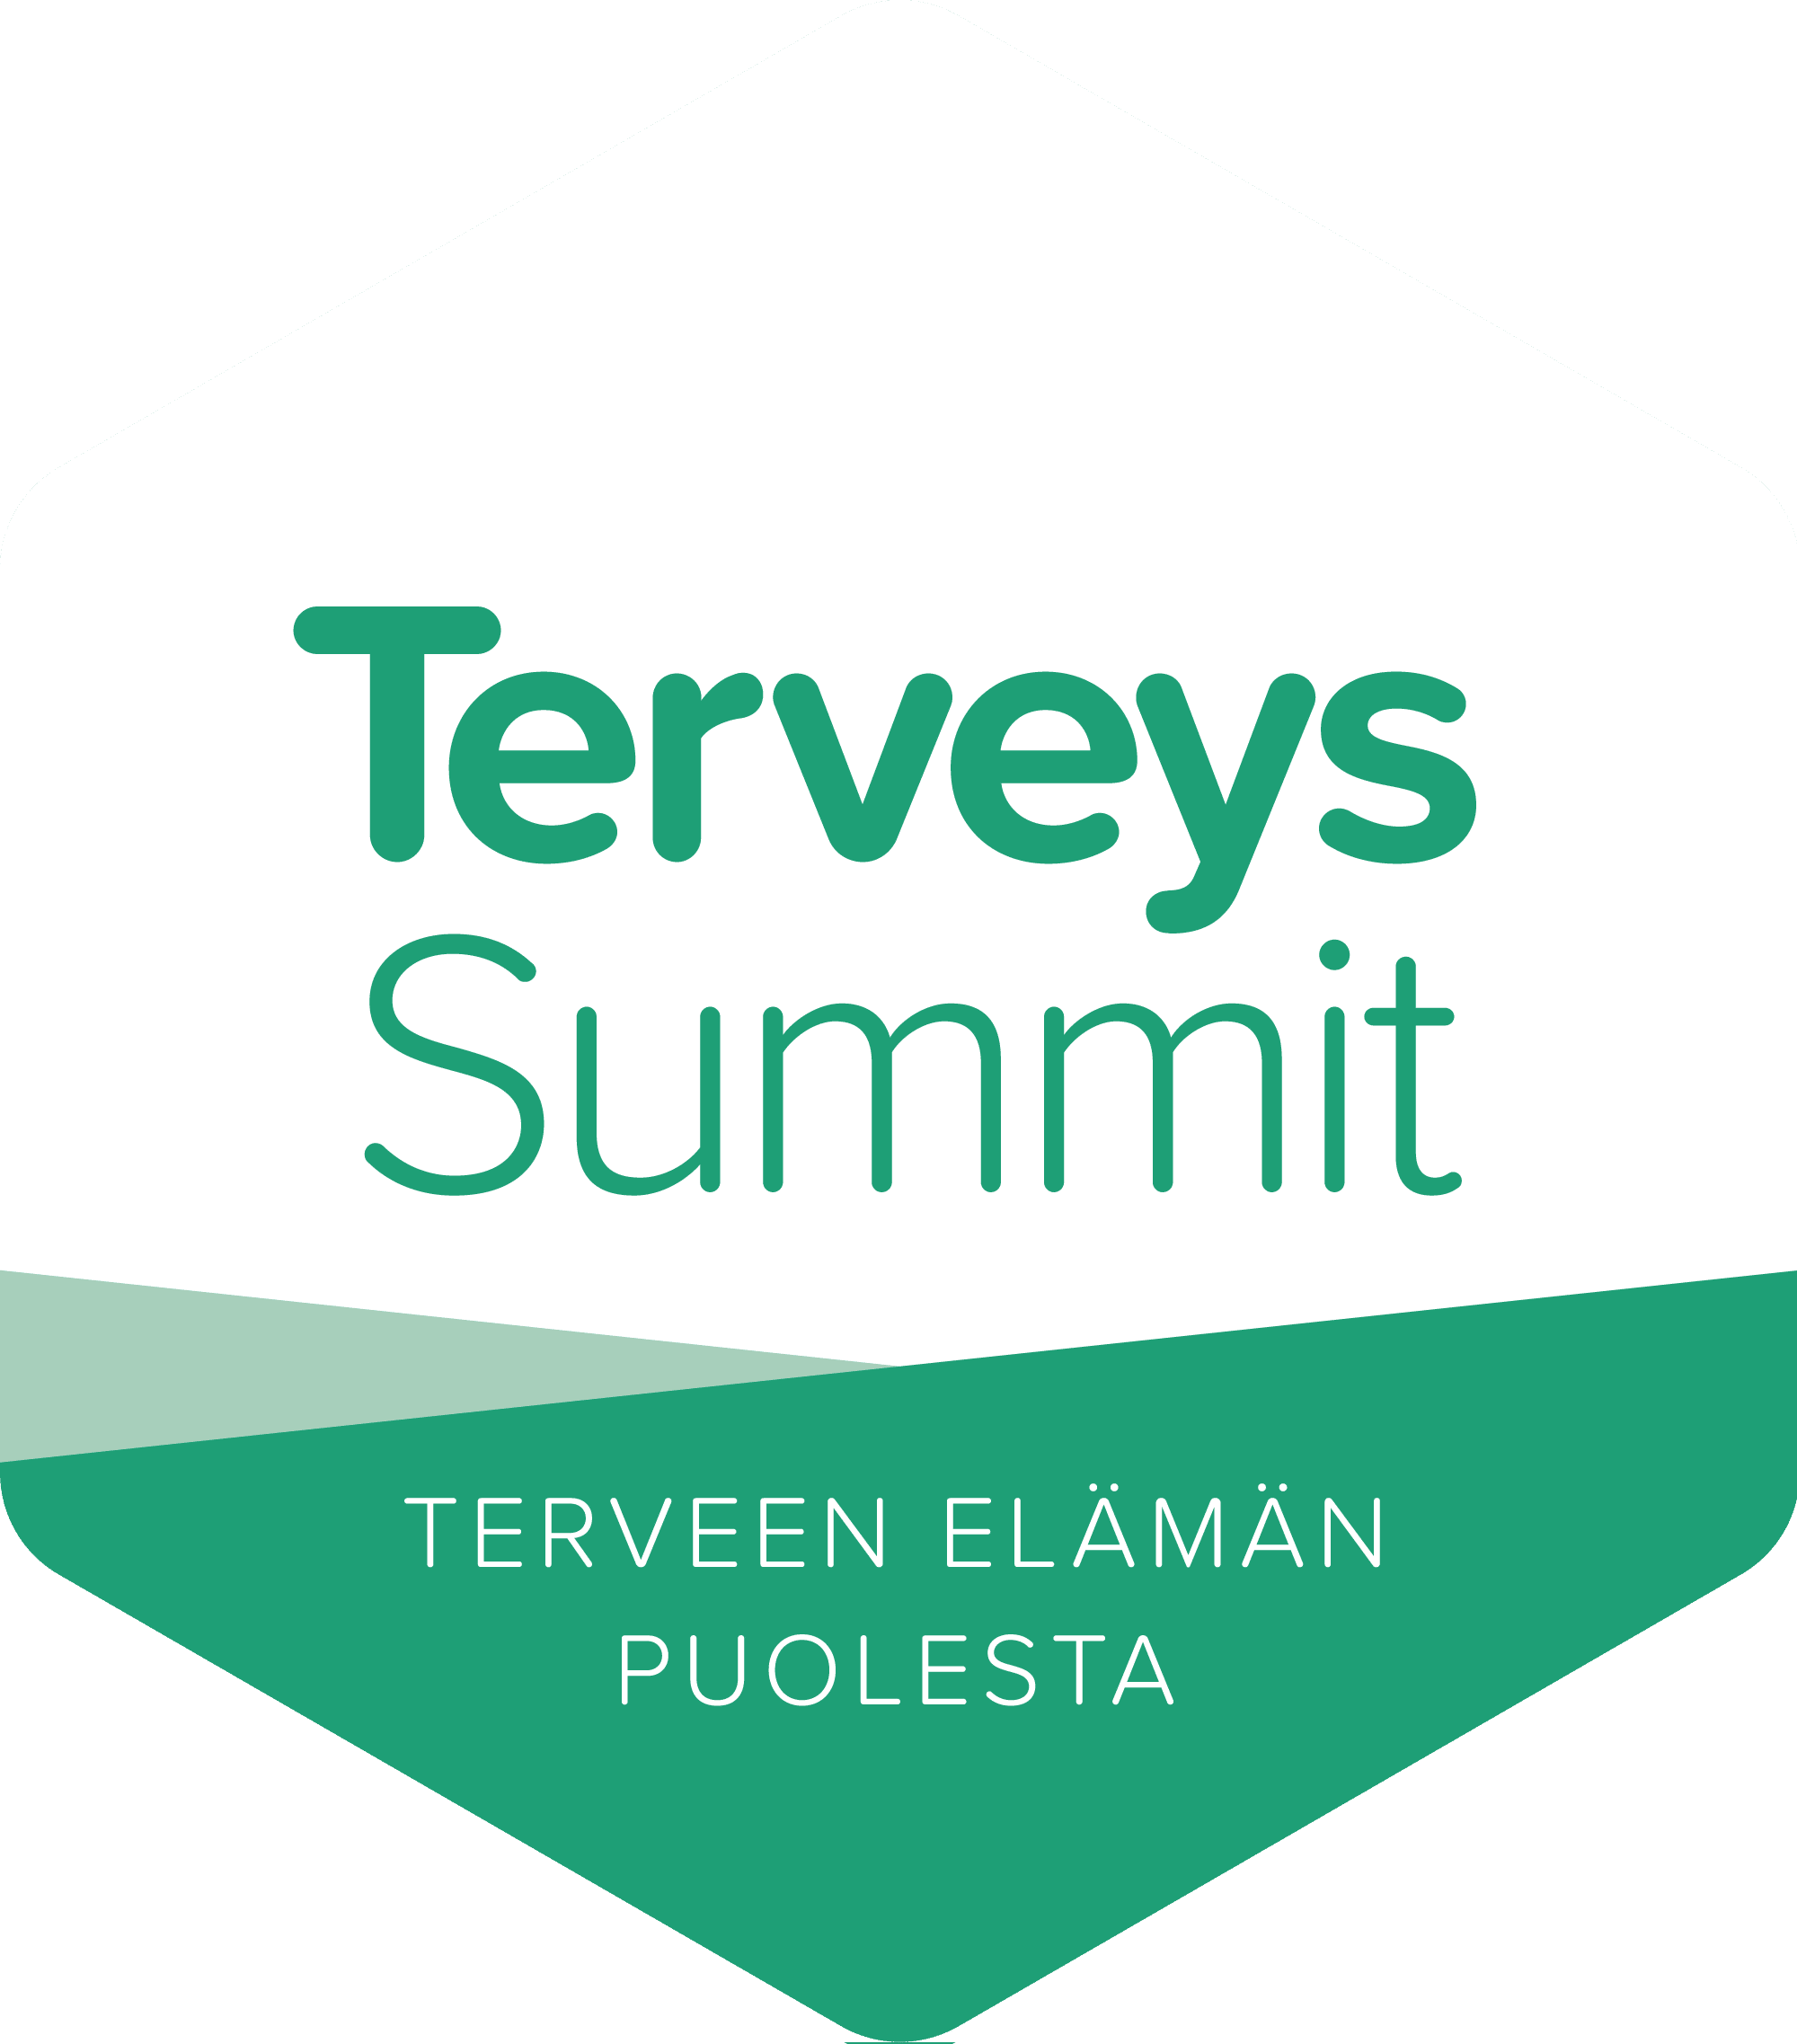 TerveysSummit - the latest health knowledge from top experts for all Finns